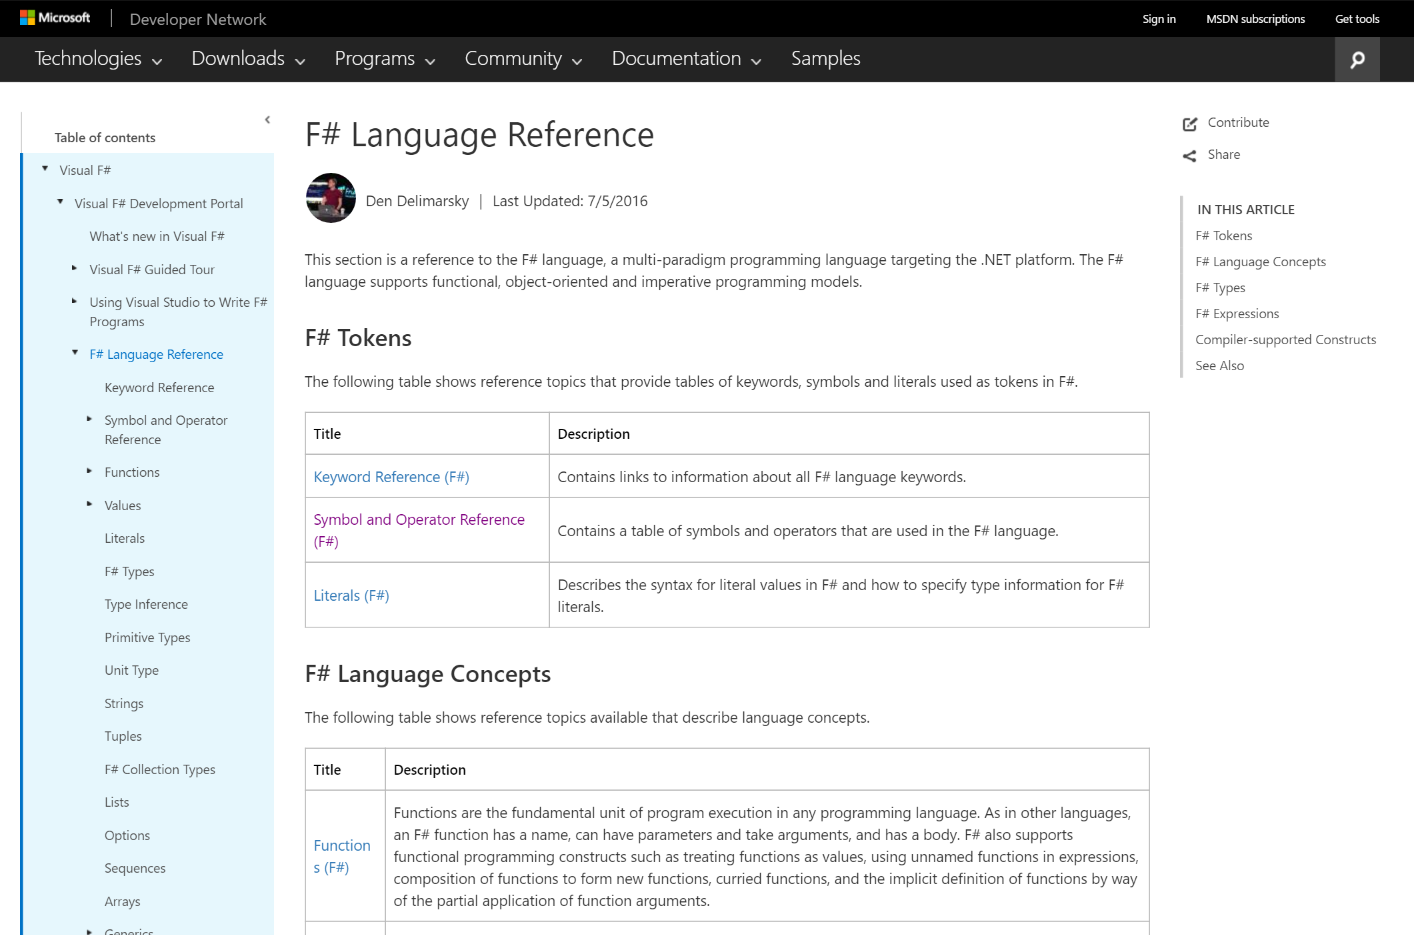 F# docs are now on docs microsoft com | Microsoft Docs